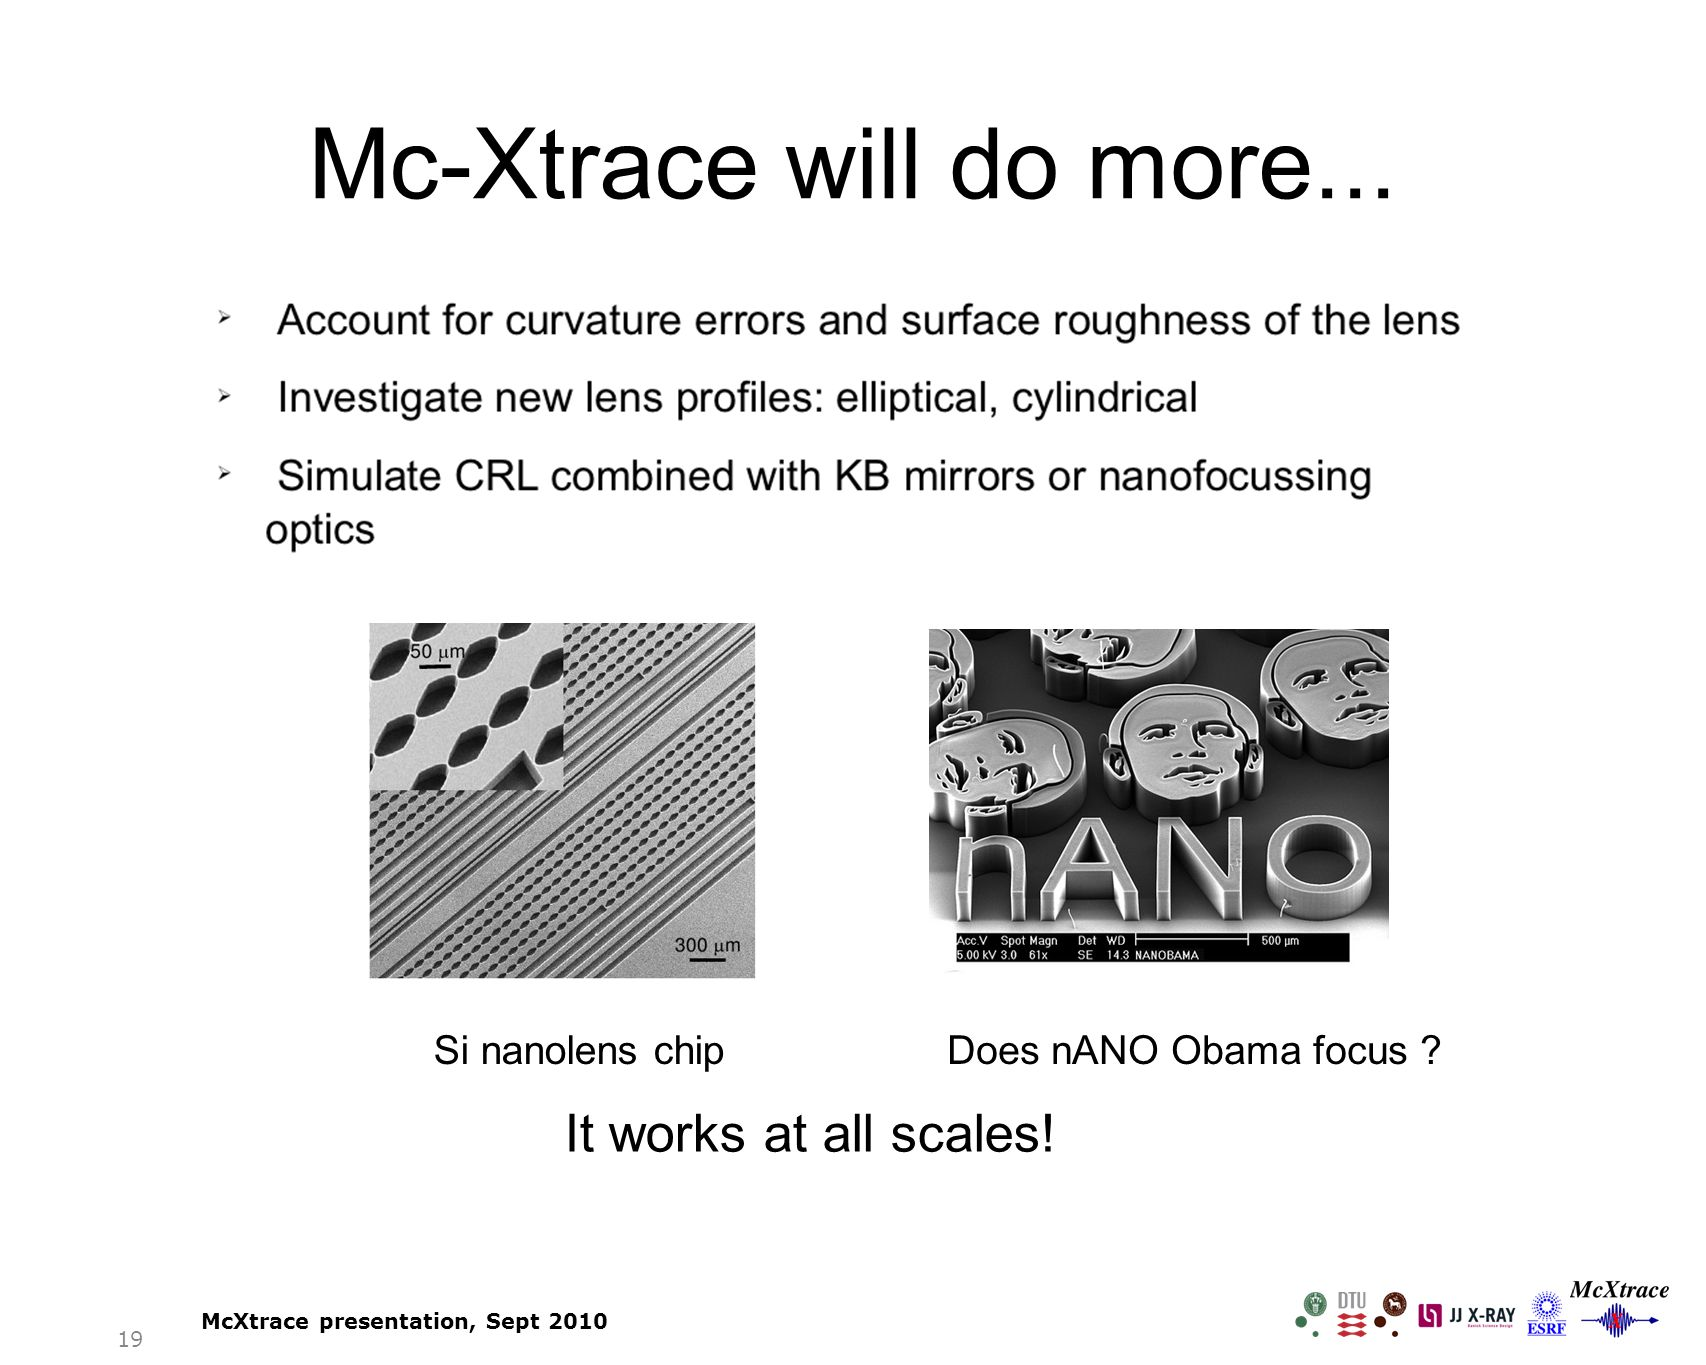 Mc-Xtrace will do more... It works at all scales.